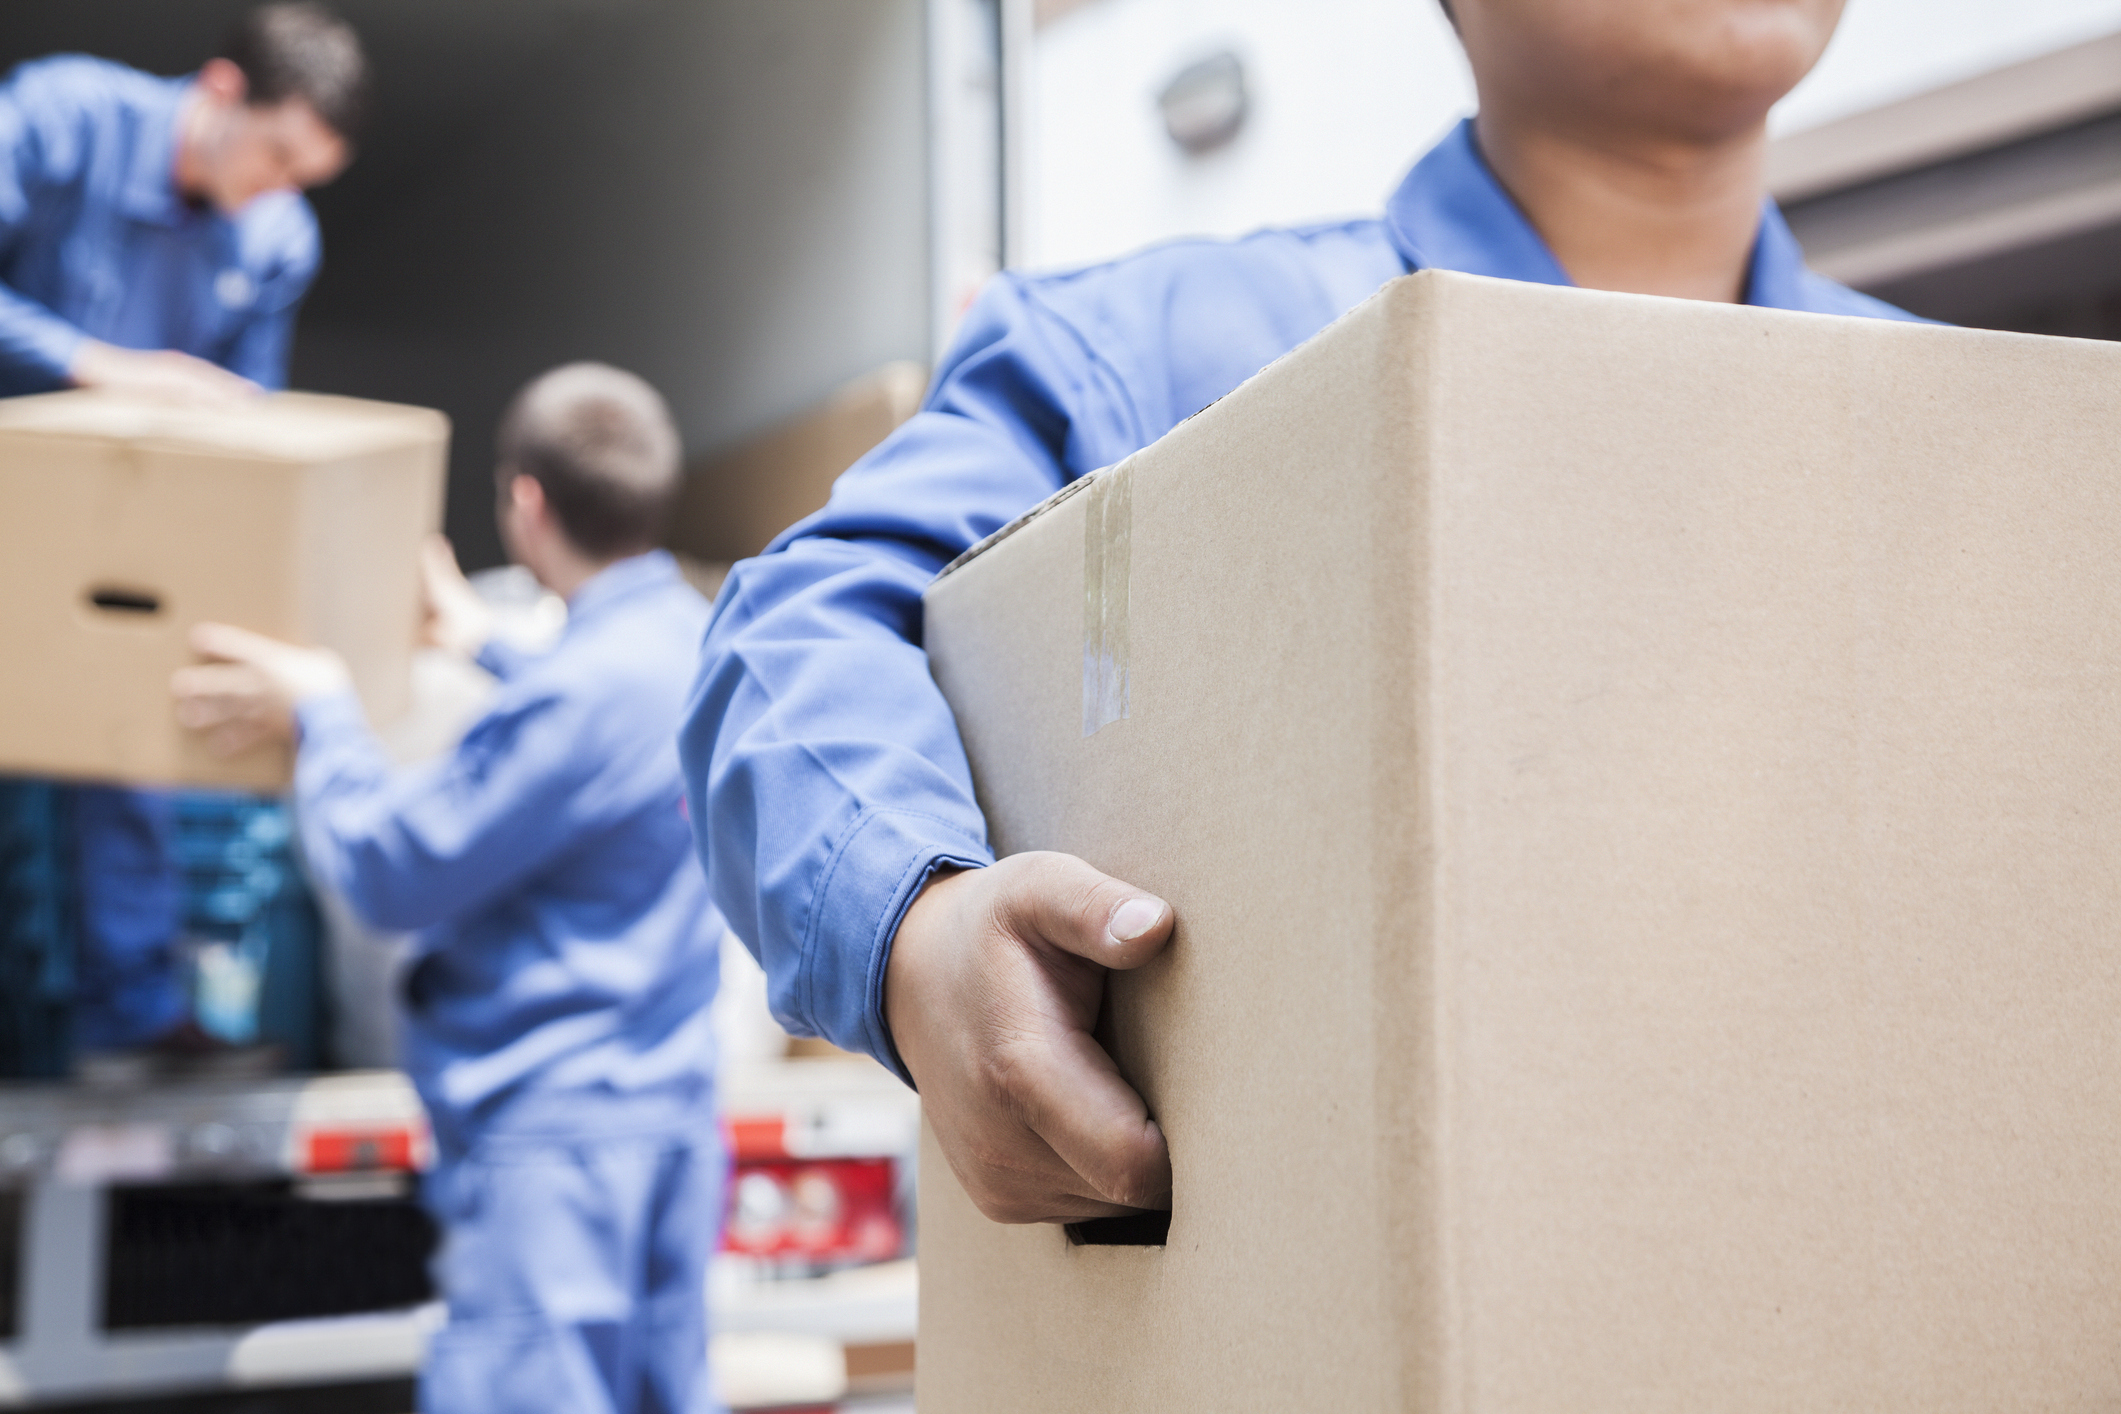 Hire an experienced mover and get the customized services